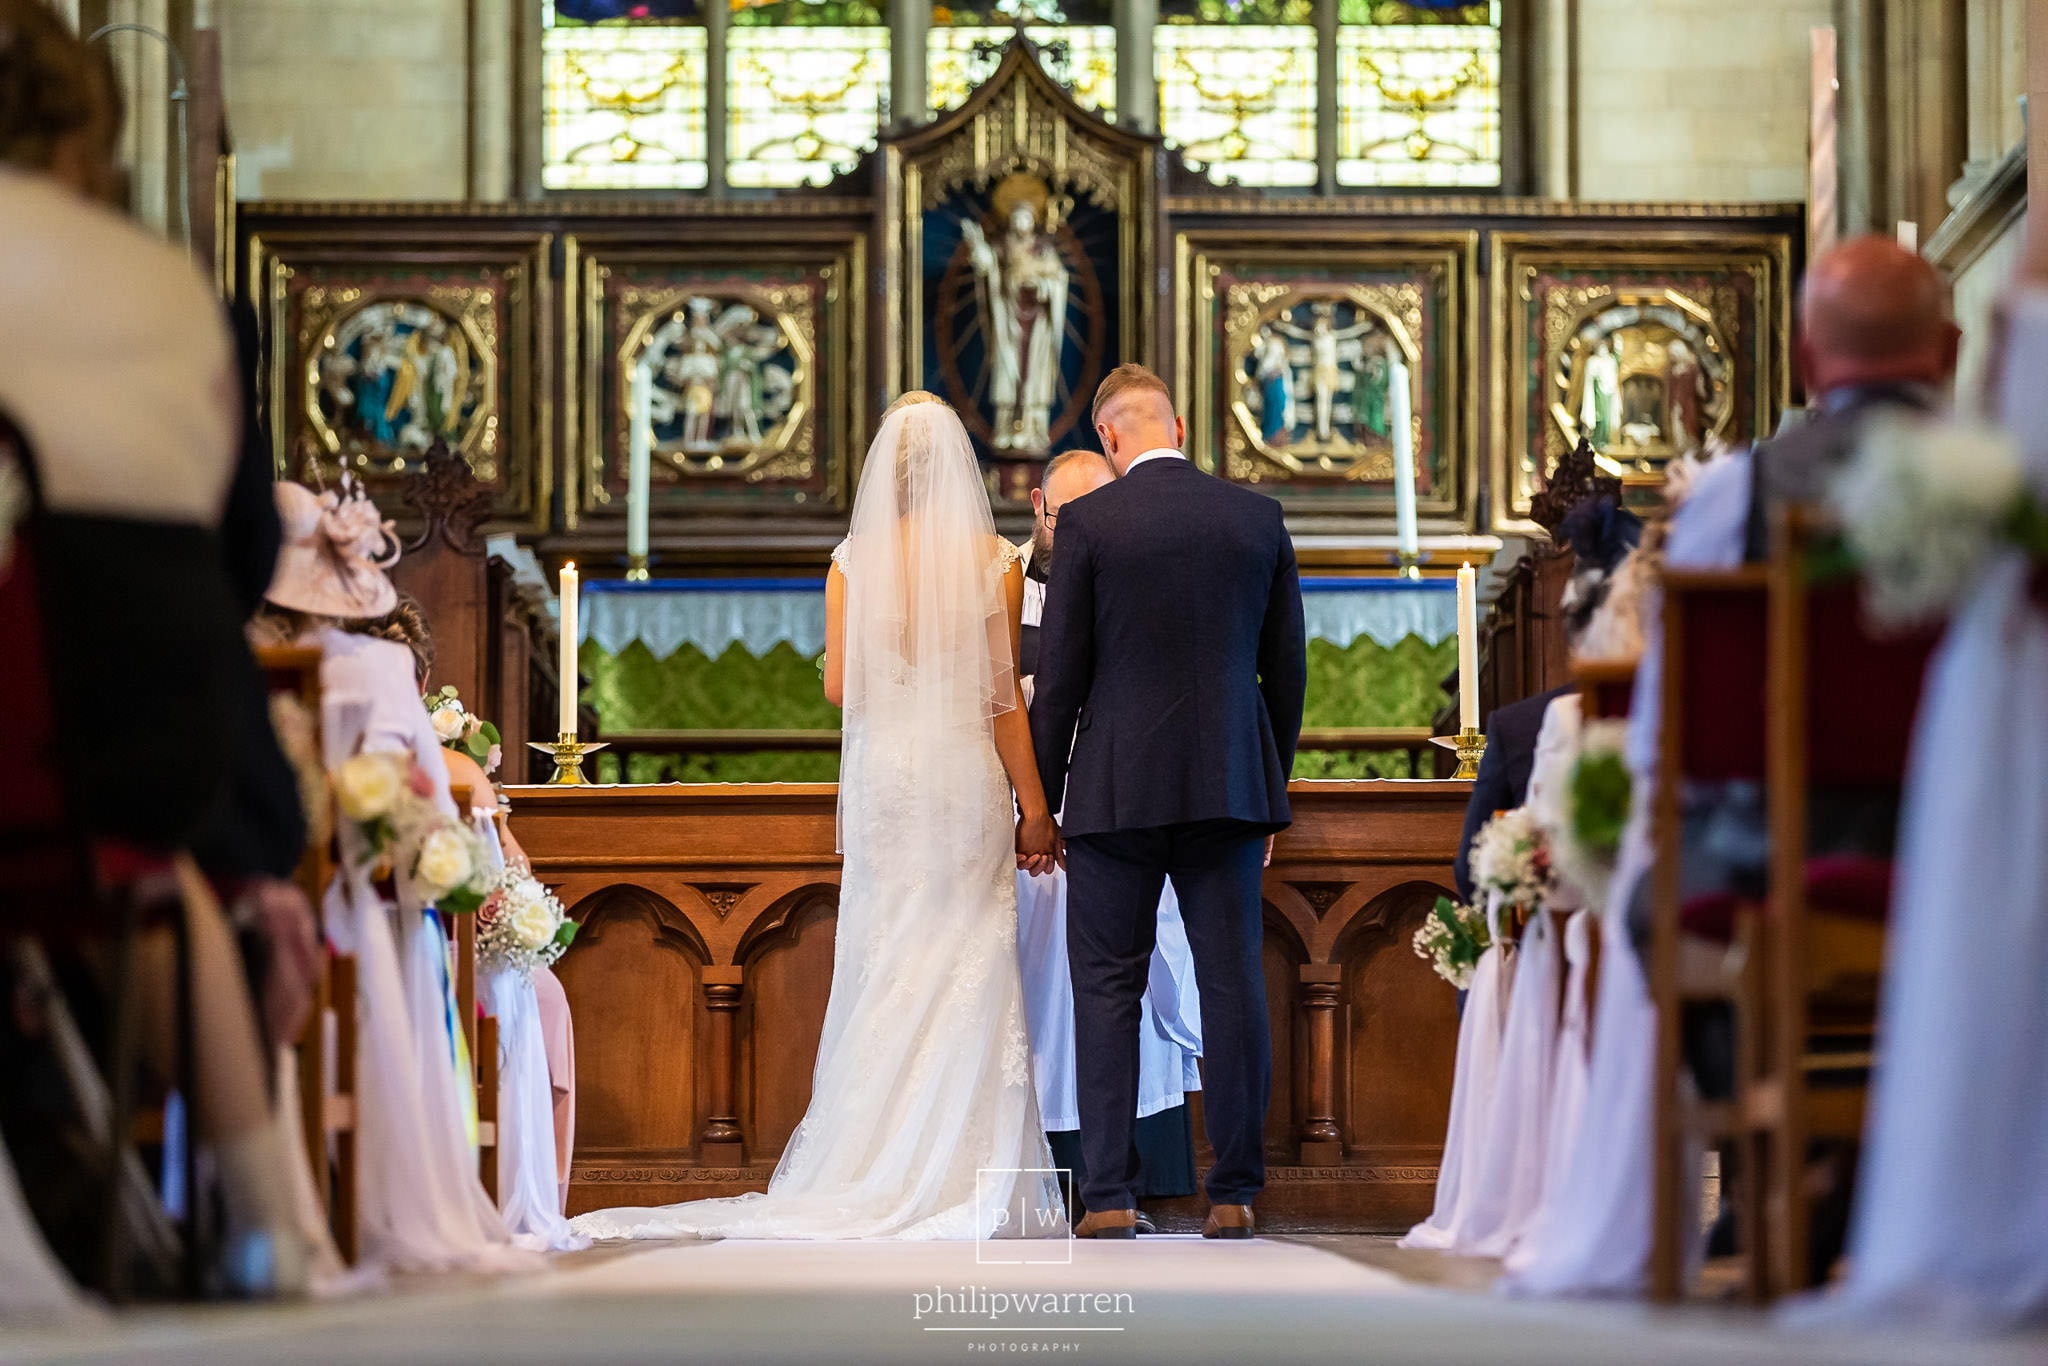 photo taken from at the back of the church lookign down the aisle at the bride and groom holding hands during the ceremony at st marys church in chepstow